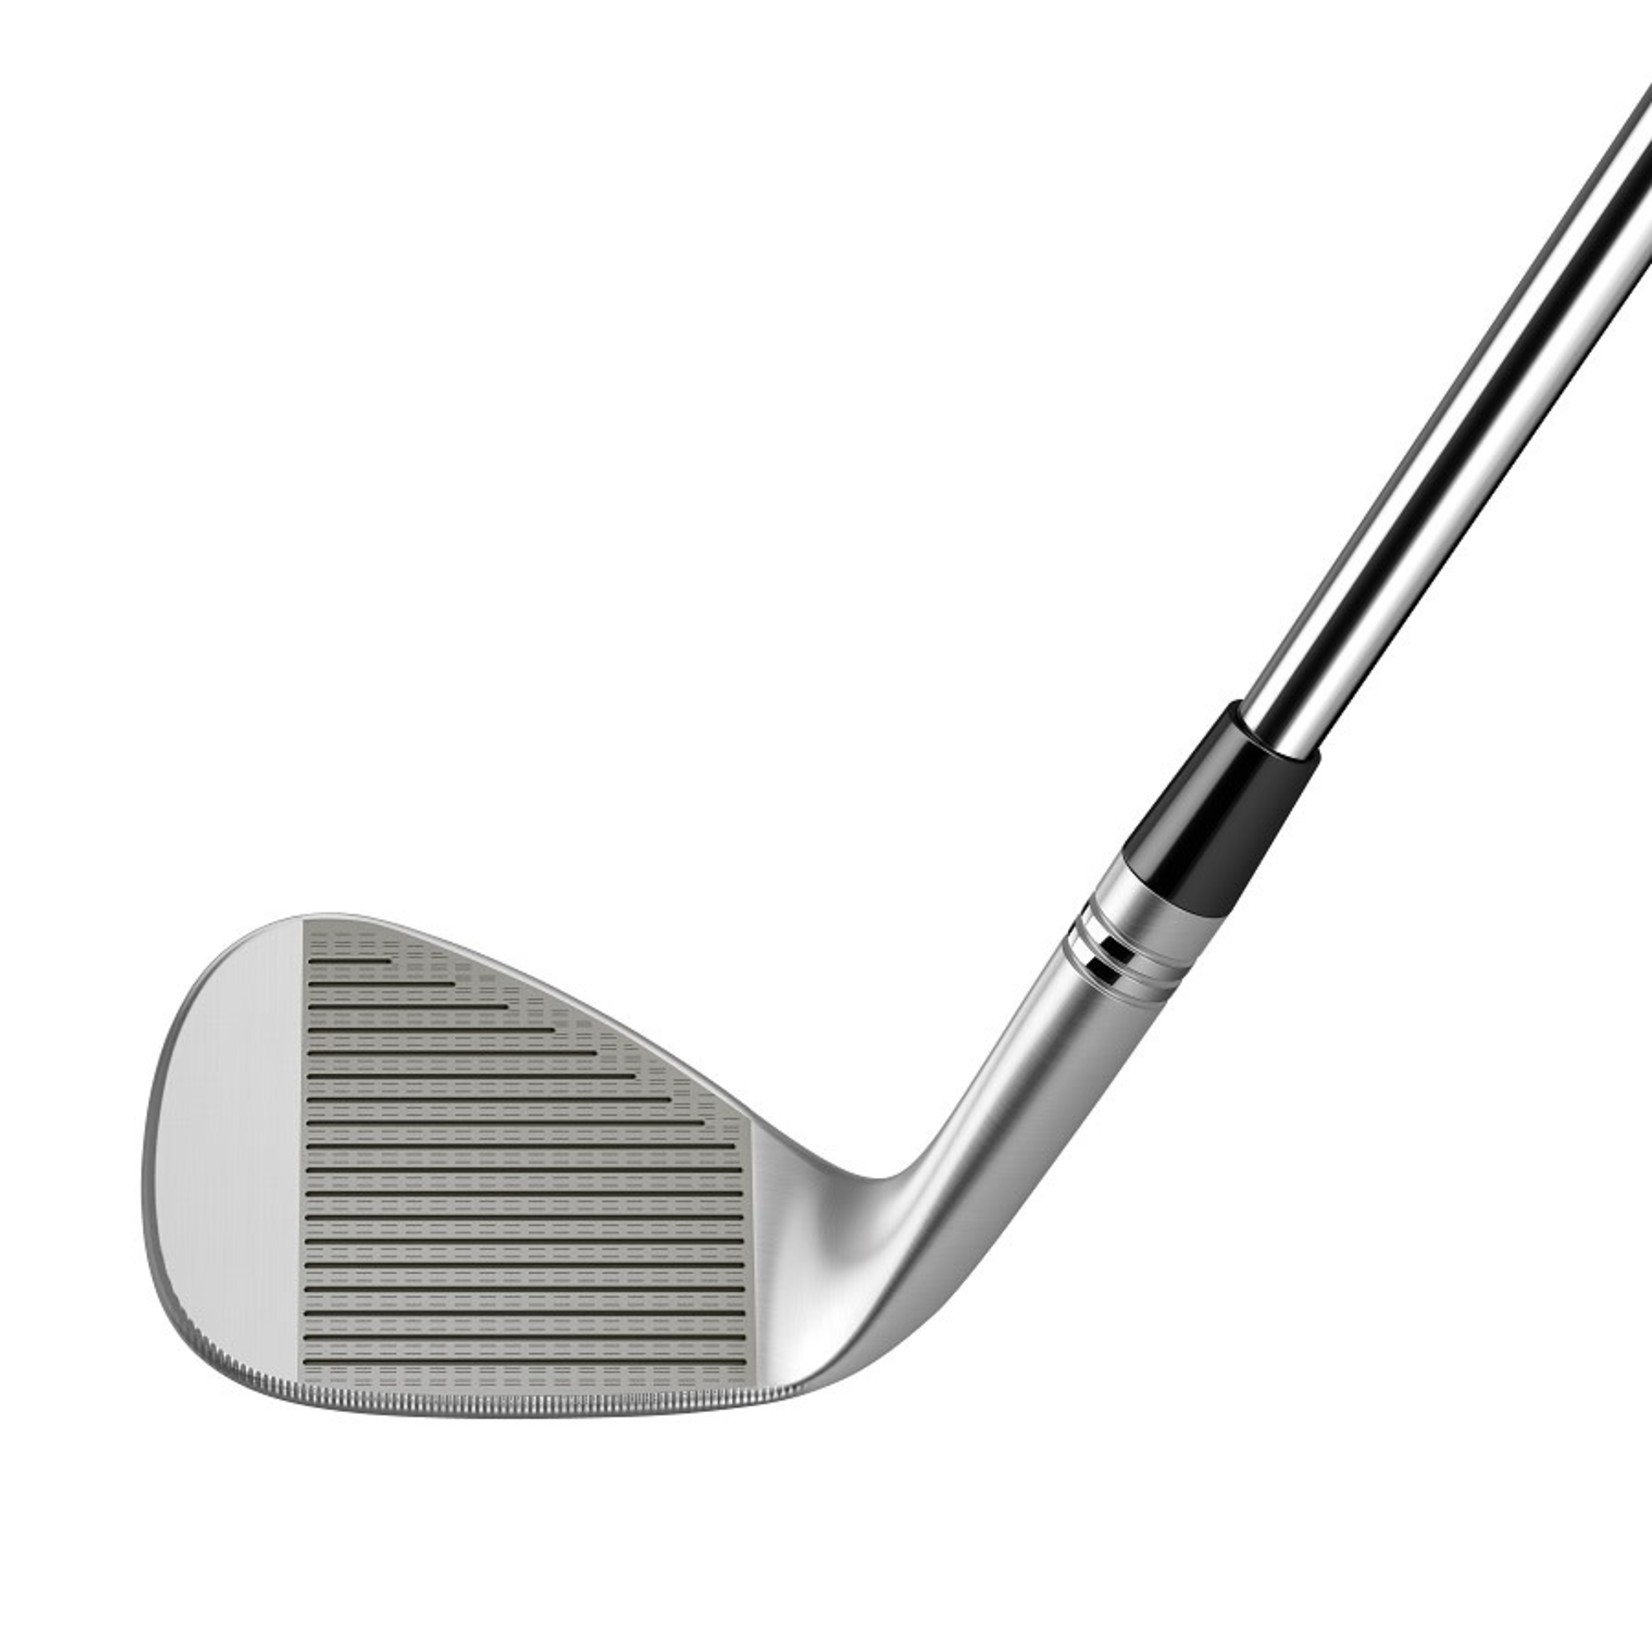 Taylor Made TaylorMade MG2 2.0 Wedge Chrome LEFTHANDED 56.12 graden